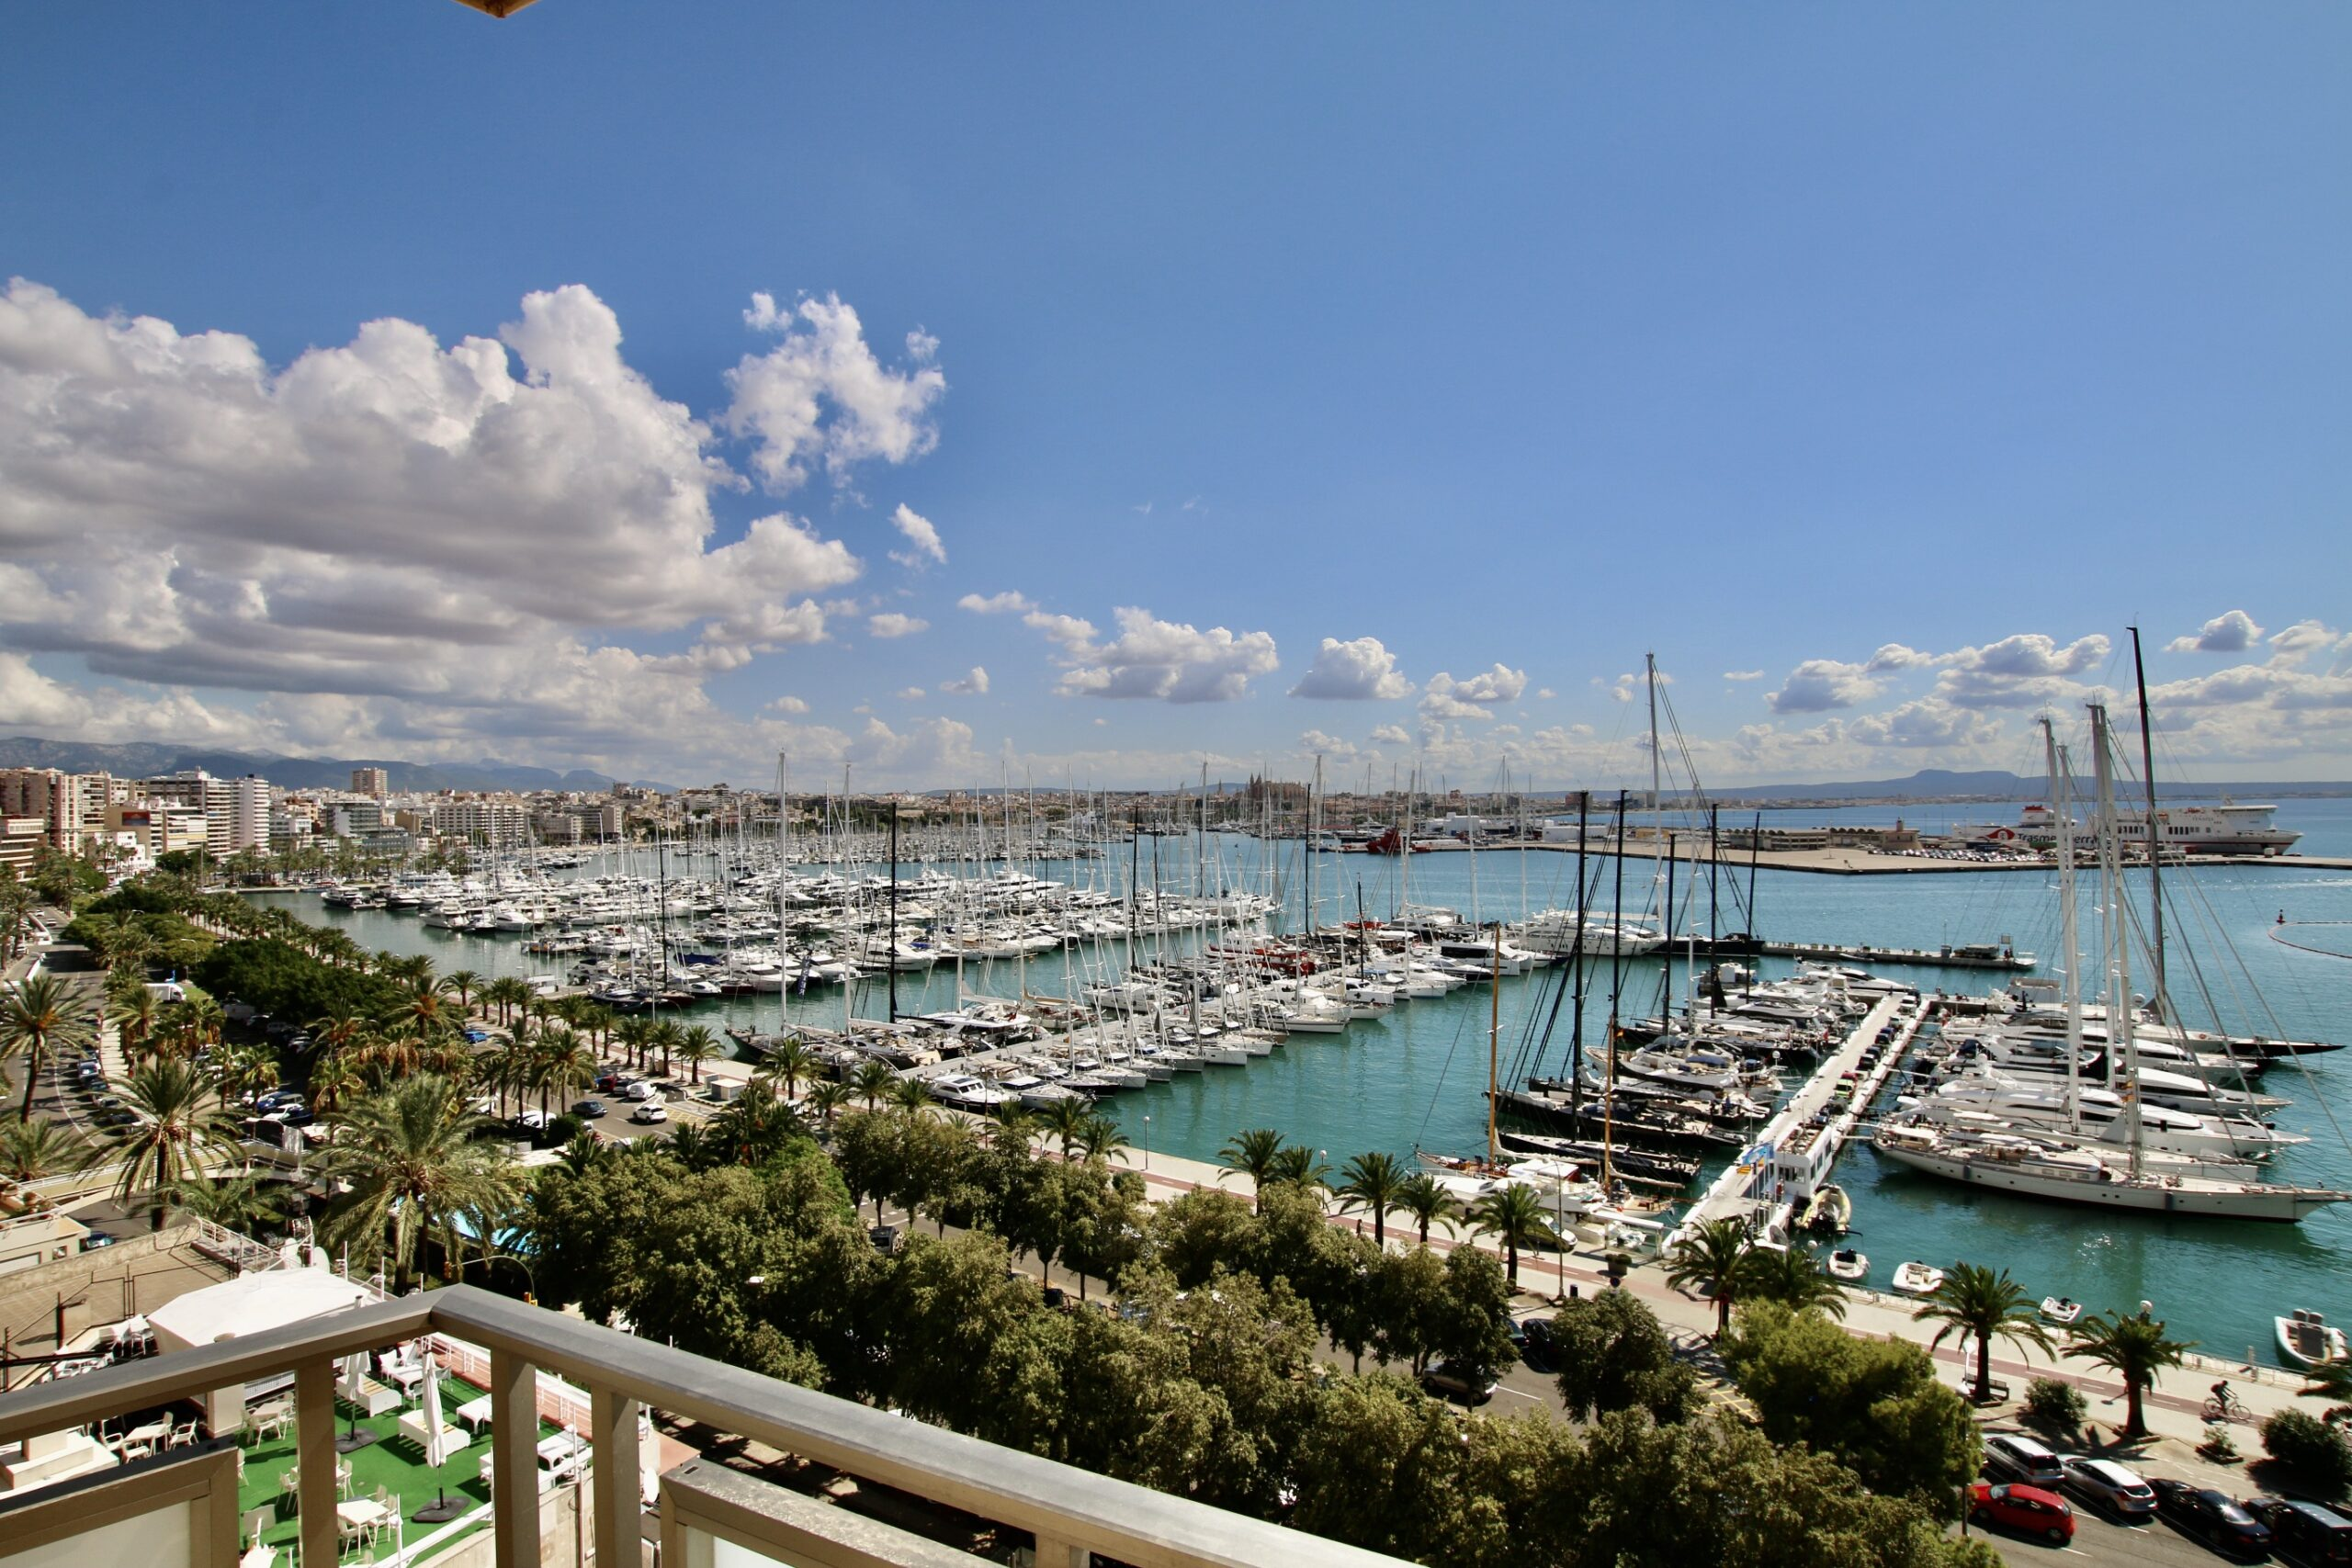 3 beds / 2 baths apartment with unbeatable views of the bay of Palma @ Mallorca